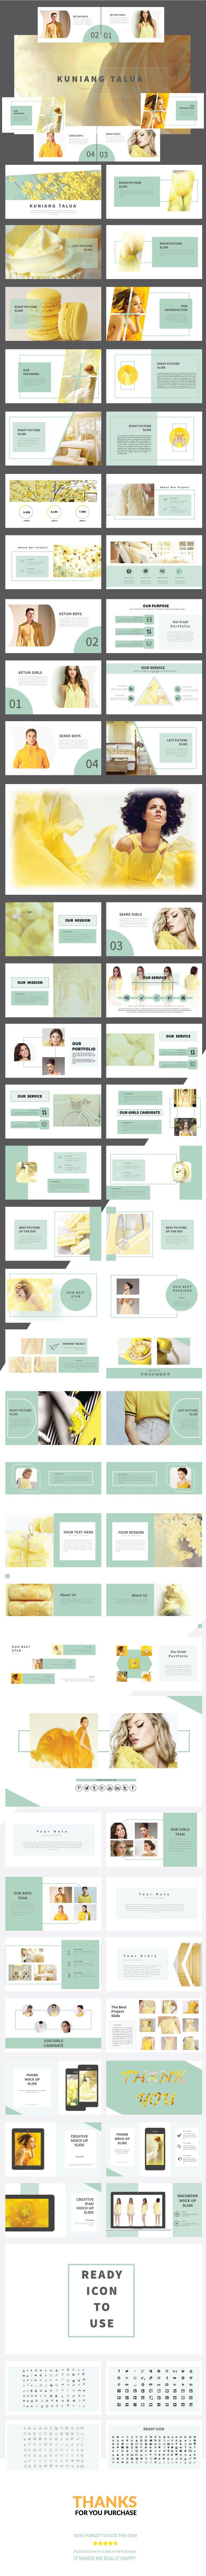 KUNIANG TALUA - Keynote template - Business Keynote Templates.